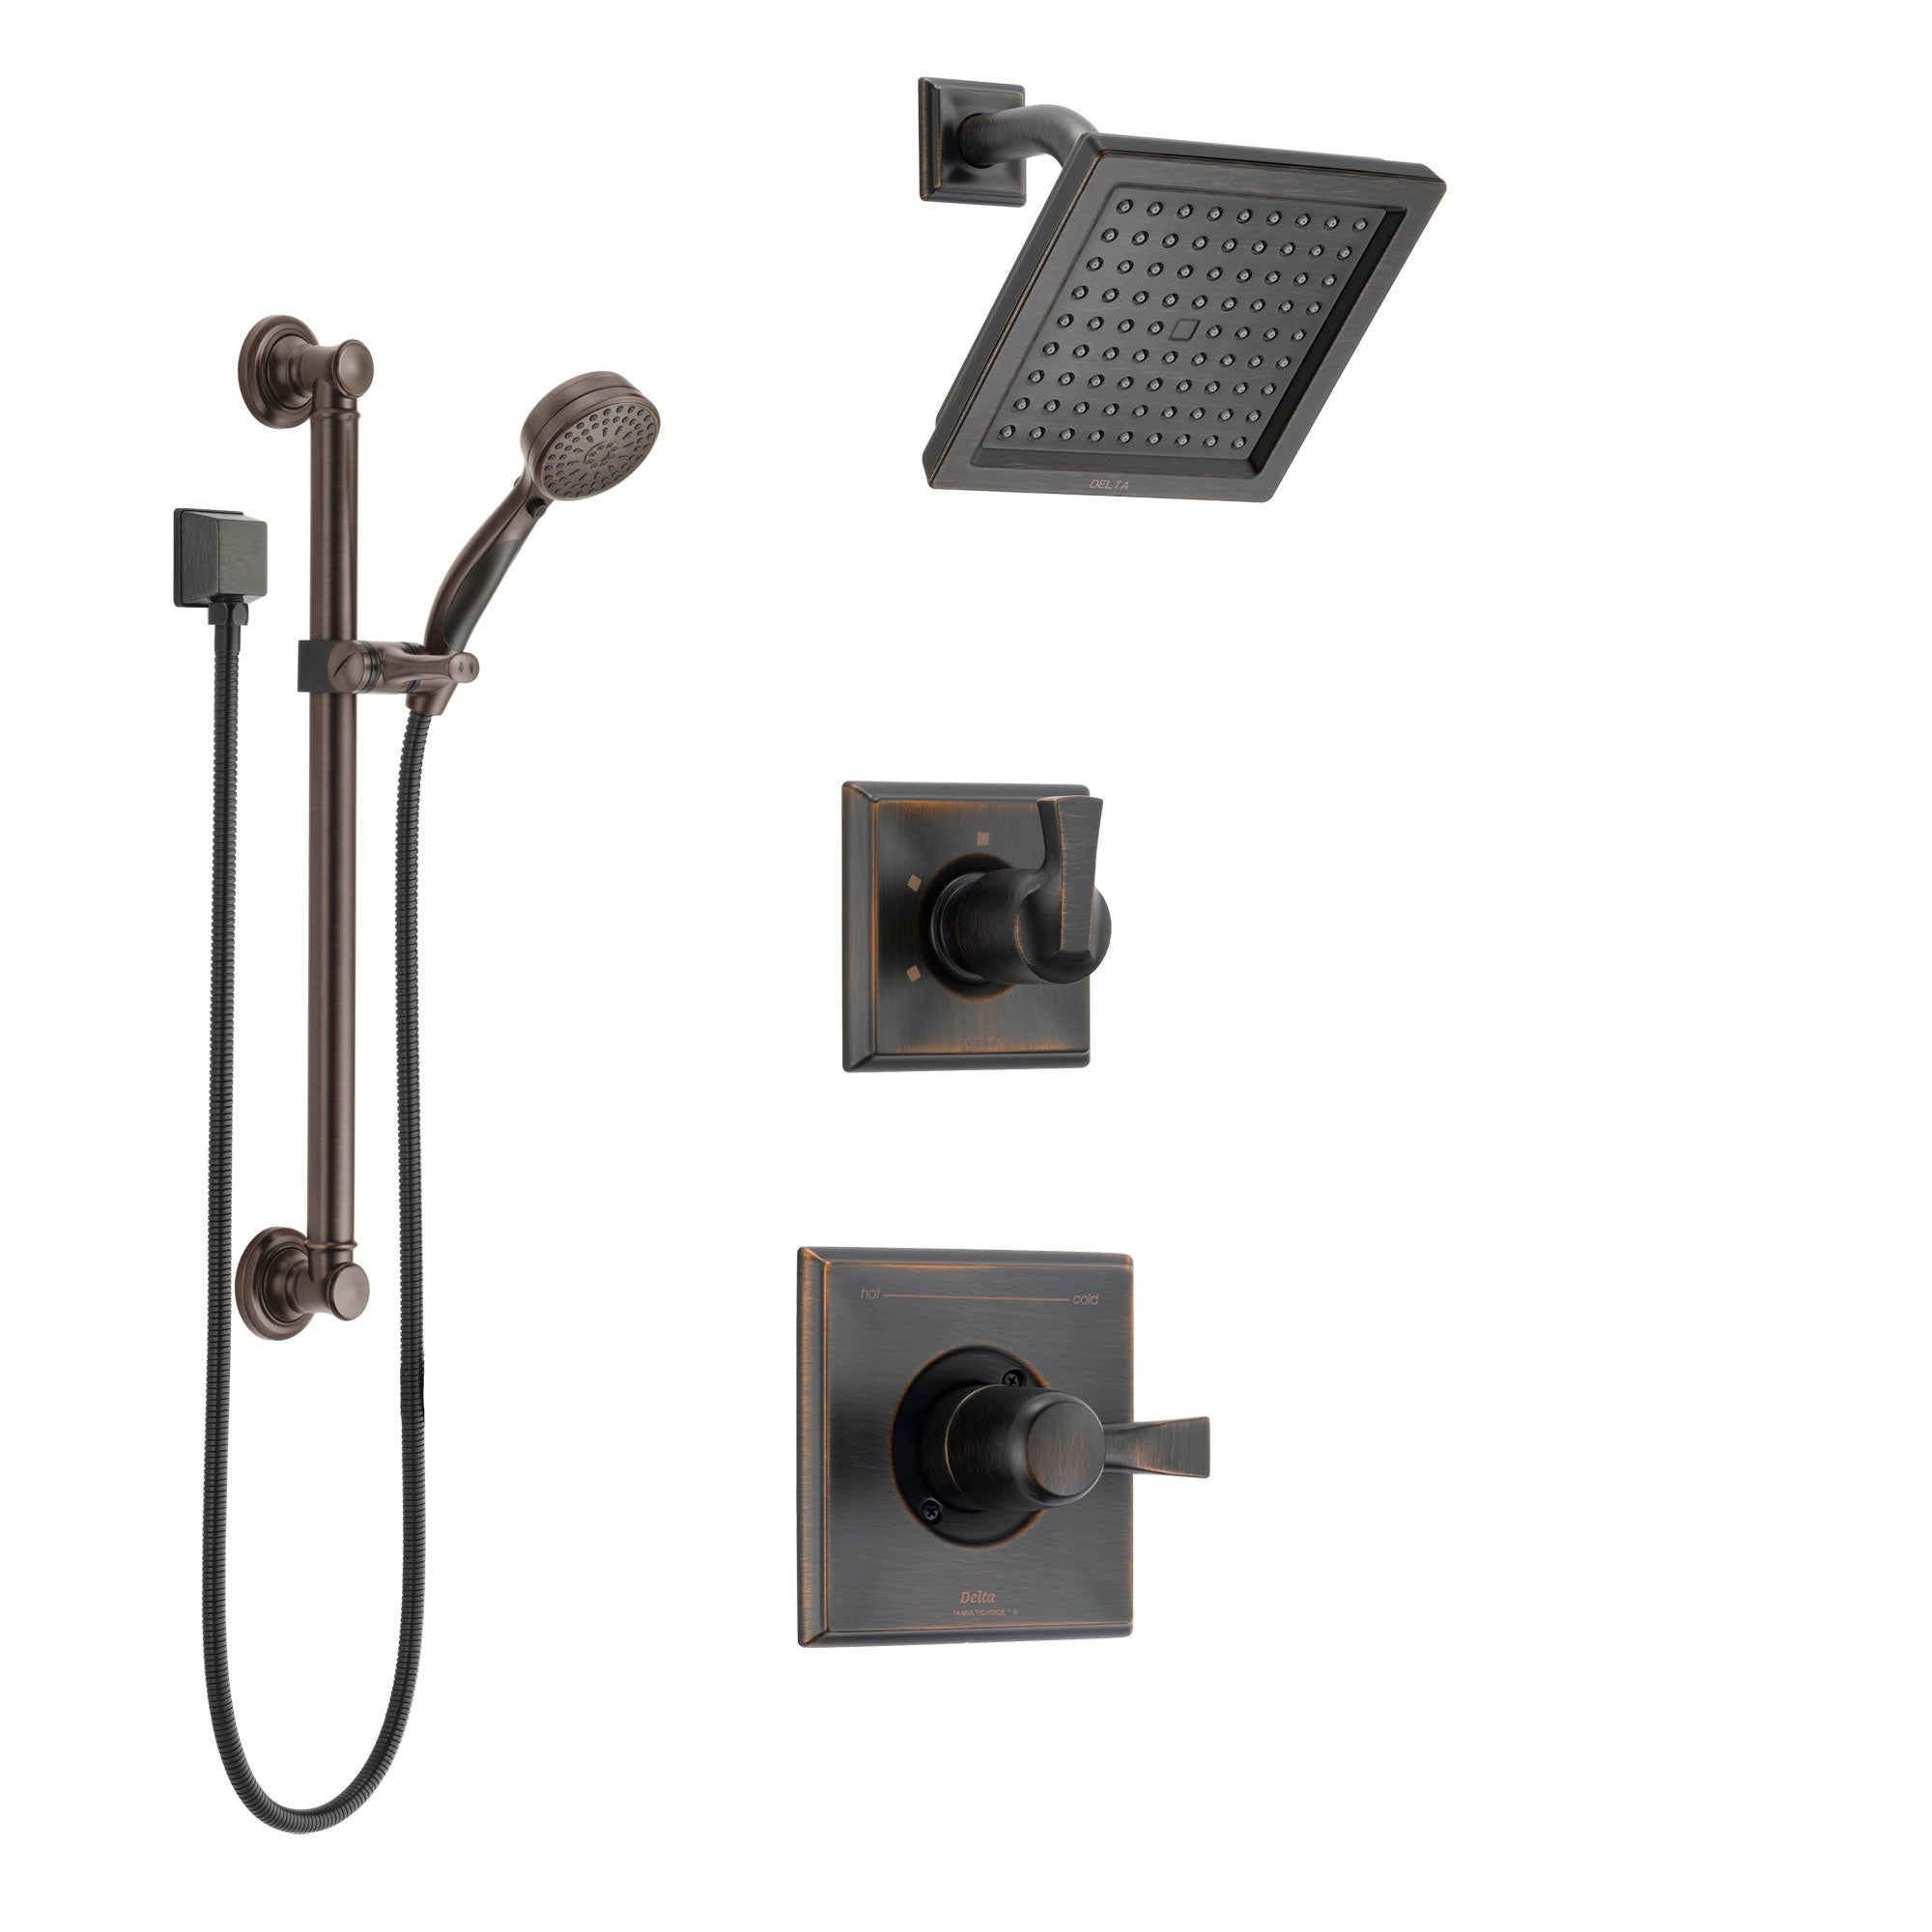 Delta Dryden Venetian Bronze Finish Shower System with Control Handle, 3-Setting Diverter, Showerhead, and Hand Shower with Grab Bar SS142511RB3